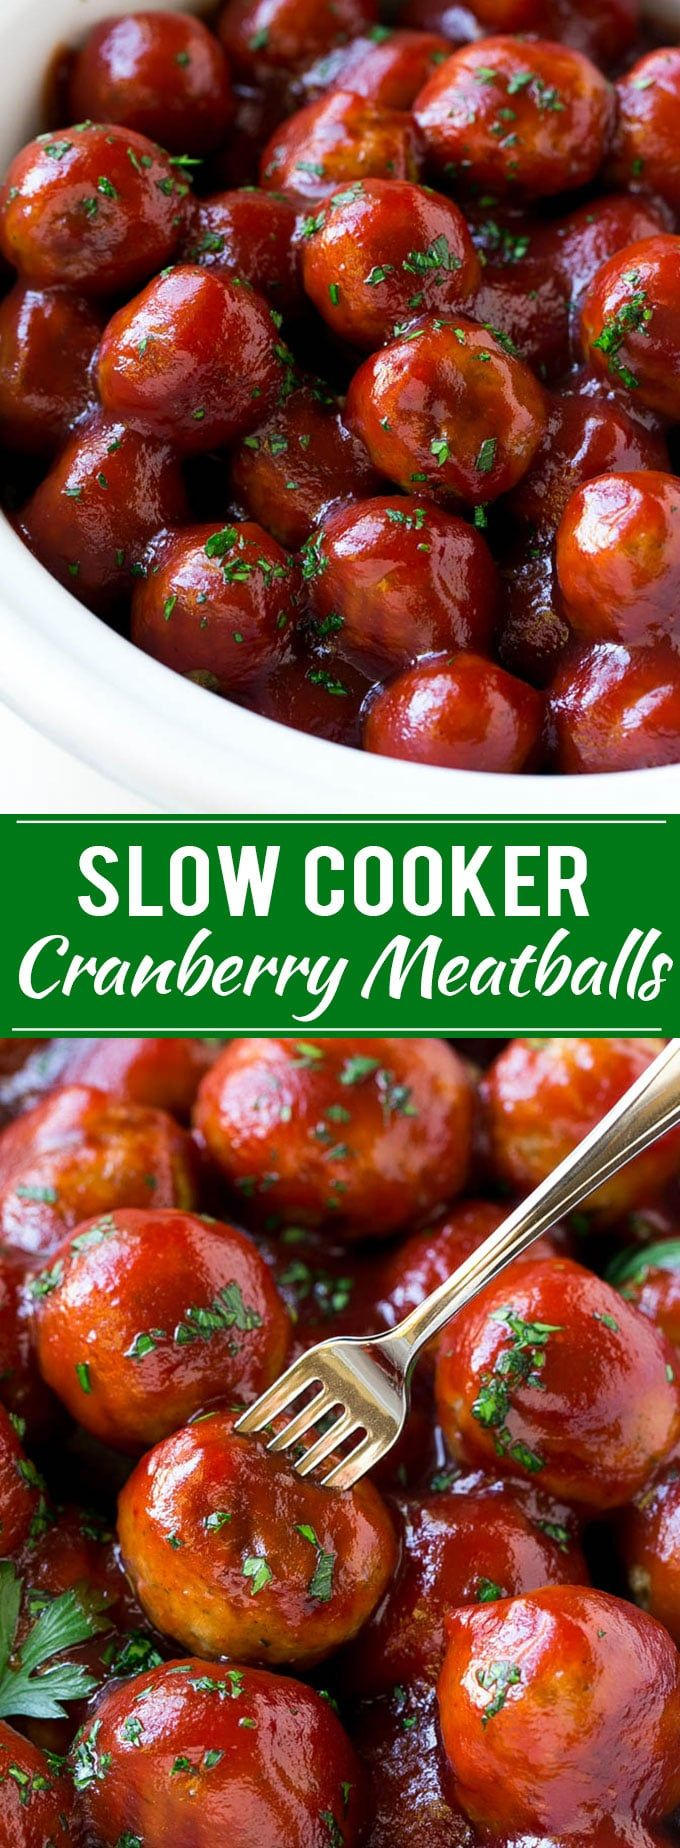 Cranberry meatballs recipe slow cooker meatballs slow for Meatball appetizer recipe crockpot